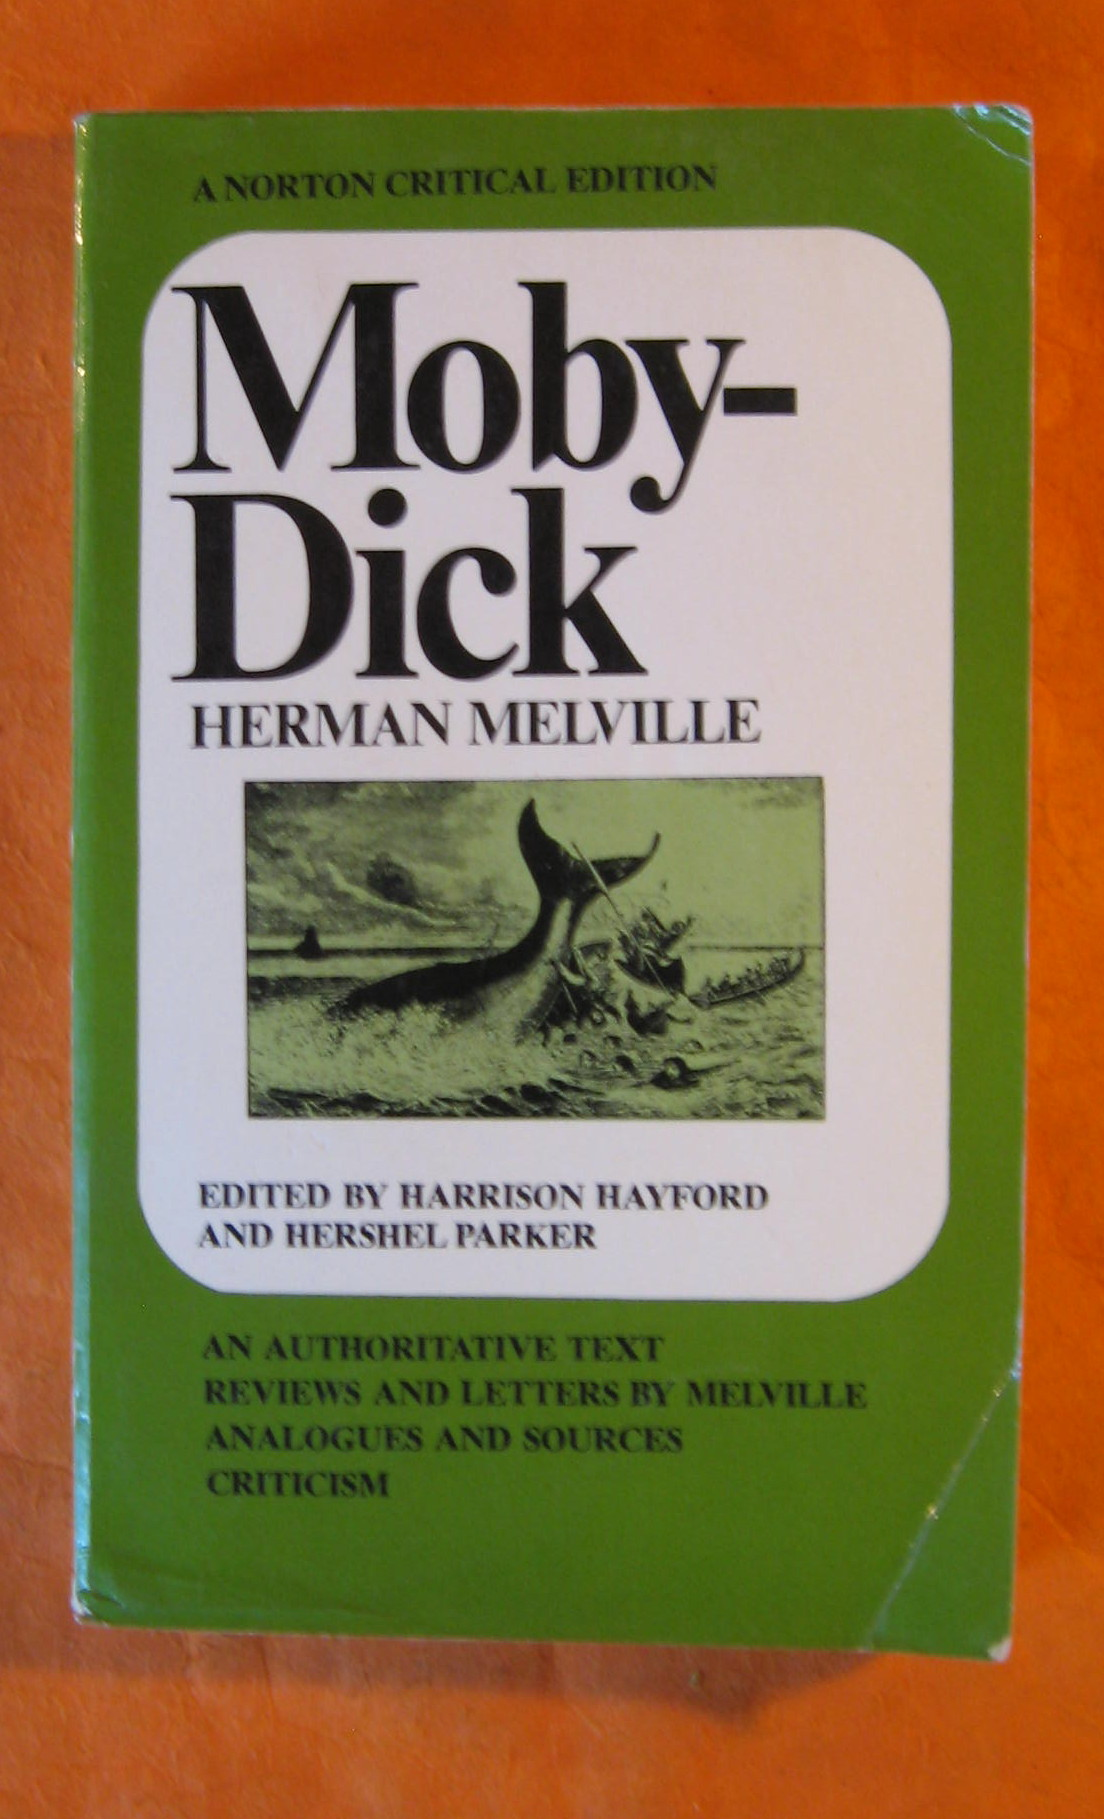 Image for Moby Dick (Norton Critical Edition)